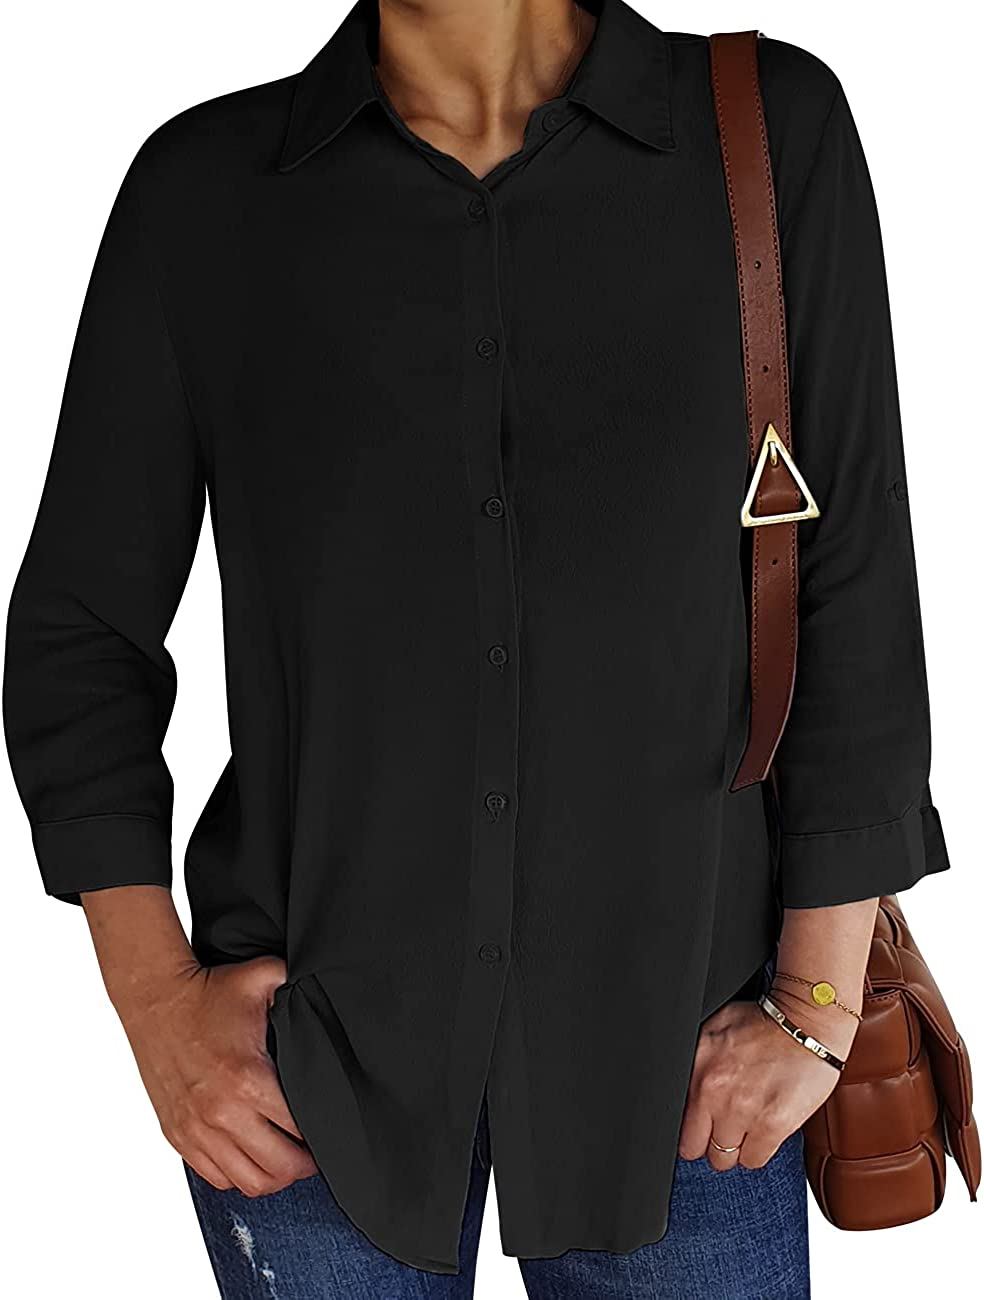 EZEN Loose-Fitting Comfort 4 3 Free shipping anywhere in the nation Long Ca Down Button Sleeve Courier shipping free Shirts